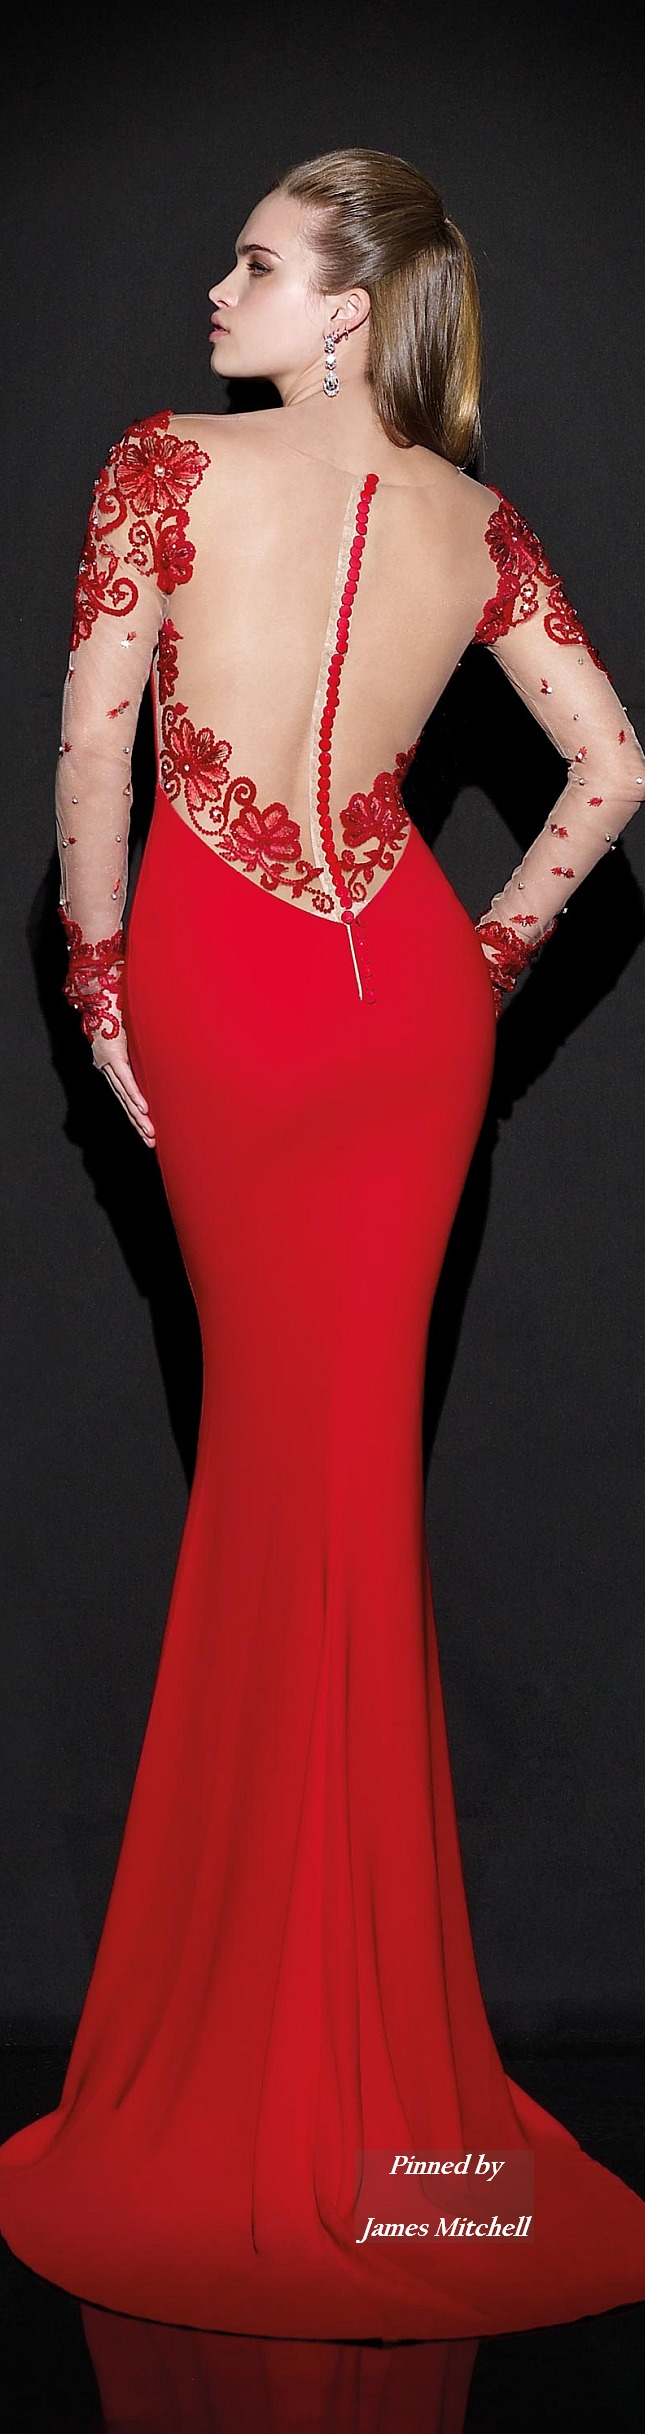 Tarik ediz collection red pinterest collection gowns and